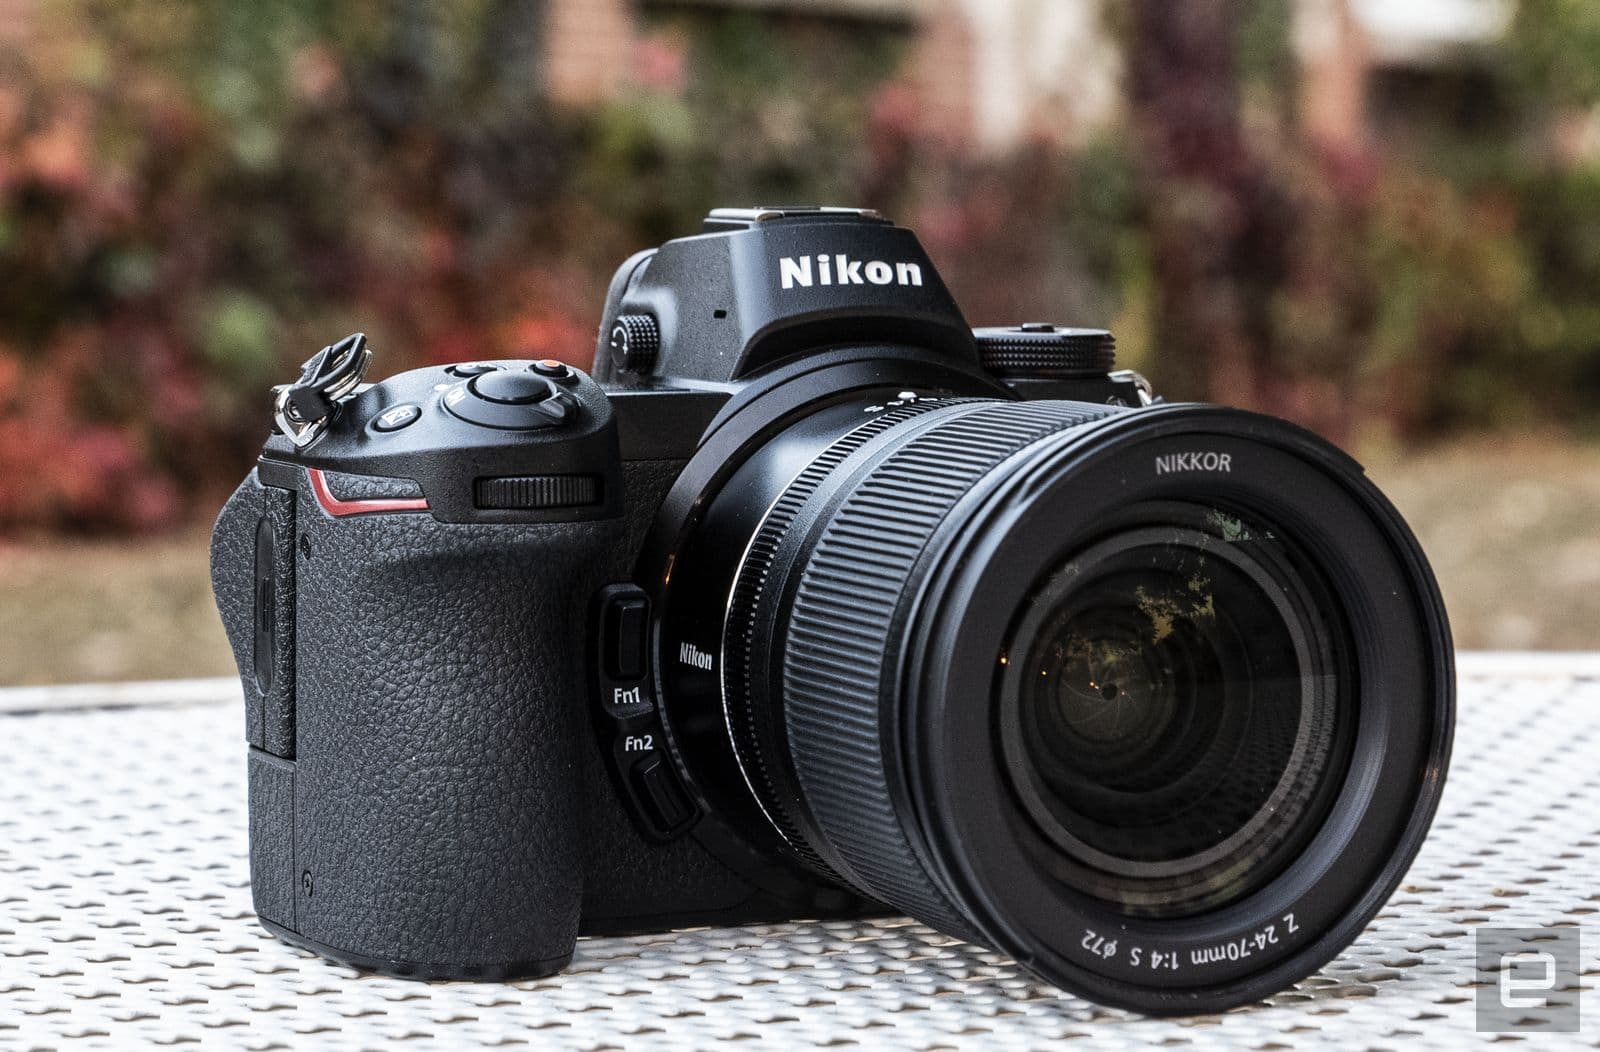 Nikon Z7 full-frame mirrorless camera